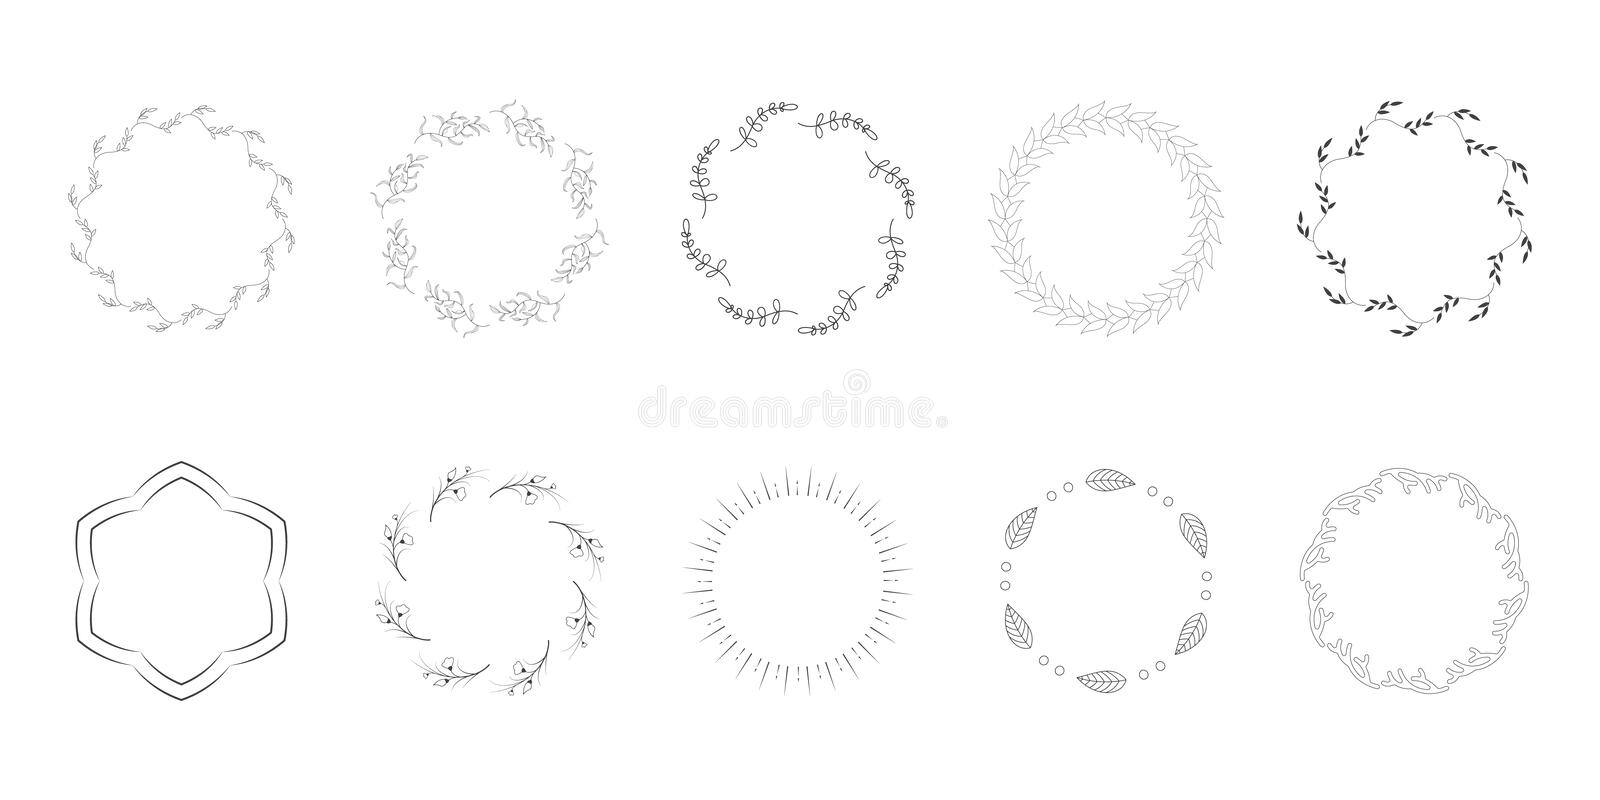 Vecteur tiré par la main Logo Elements Leaf Vector d'Art Floral Frames Wreaths Floral d'agrafe illustration libre de droits